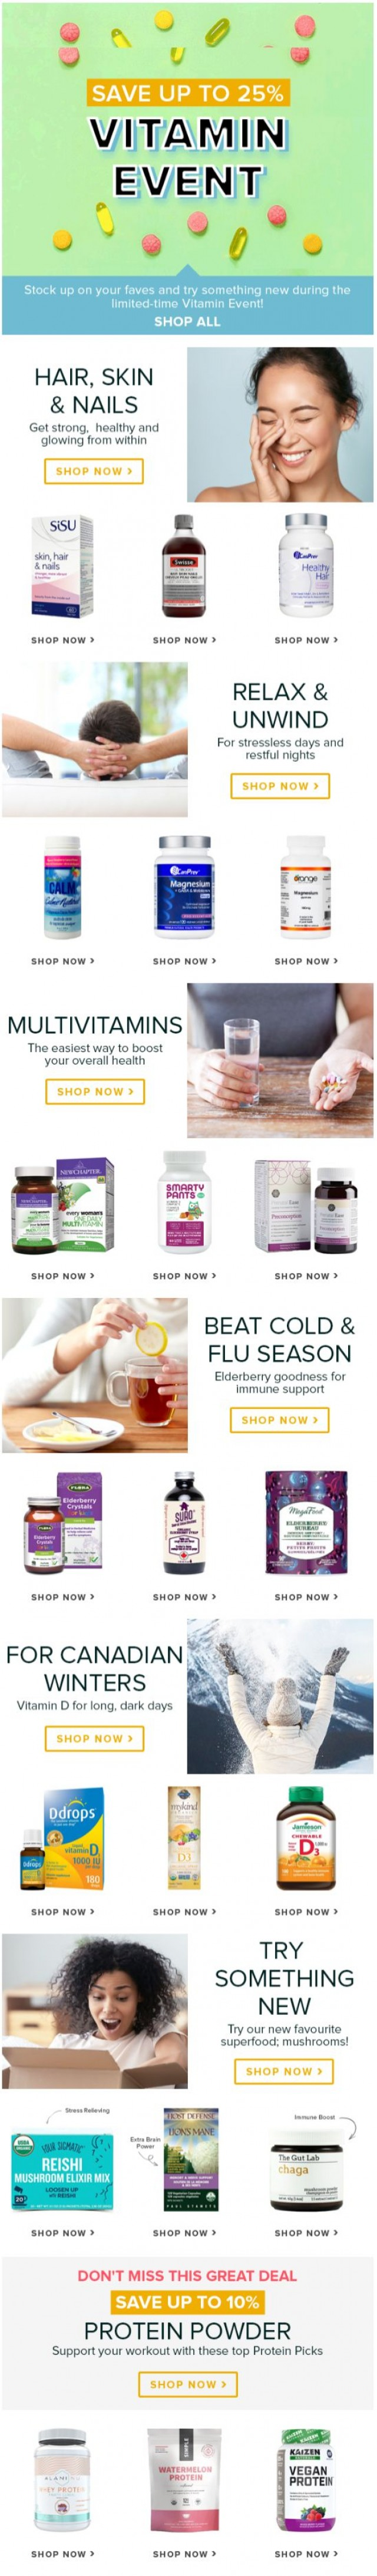 Coupon for: Well.ca - ONLY 5 DAYS LEFT: Save up to 25% off the Vitamin Event!